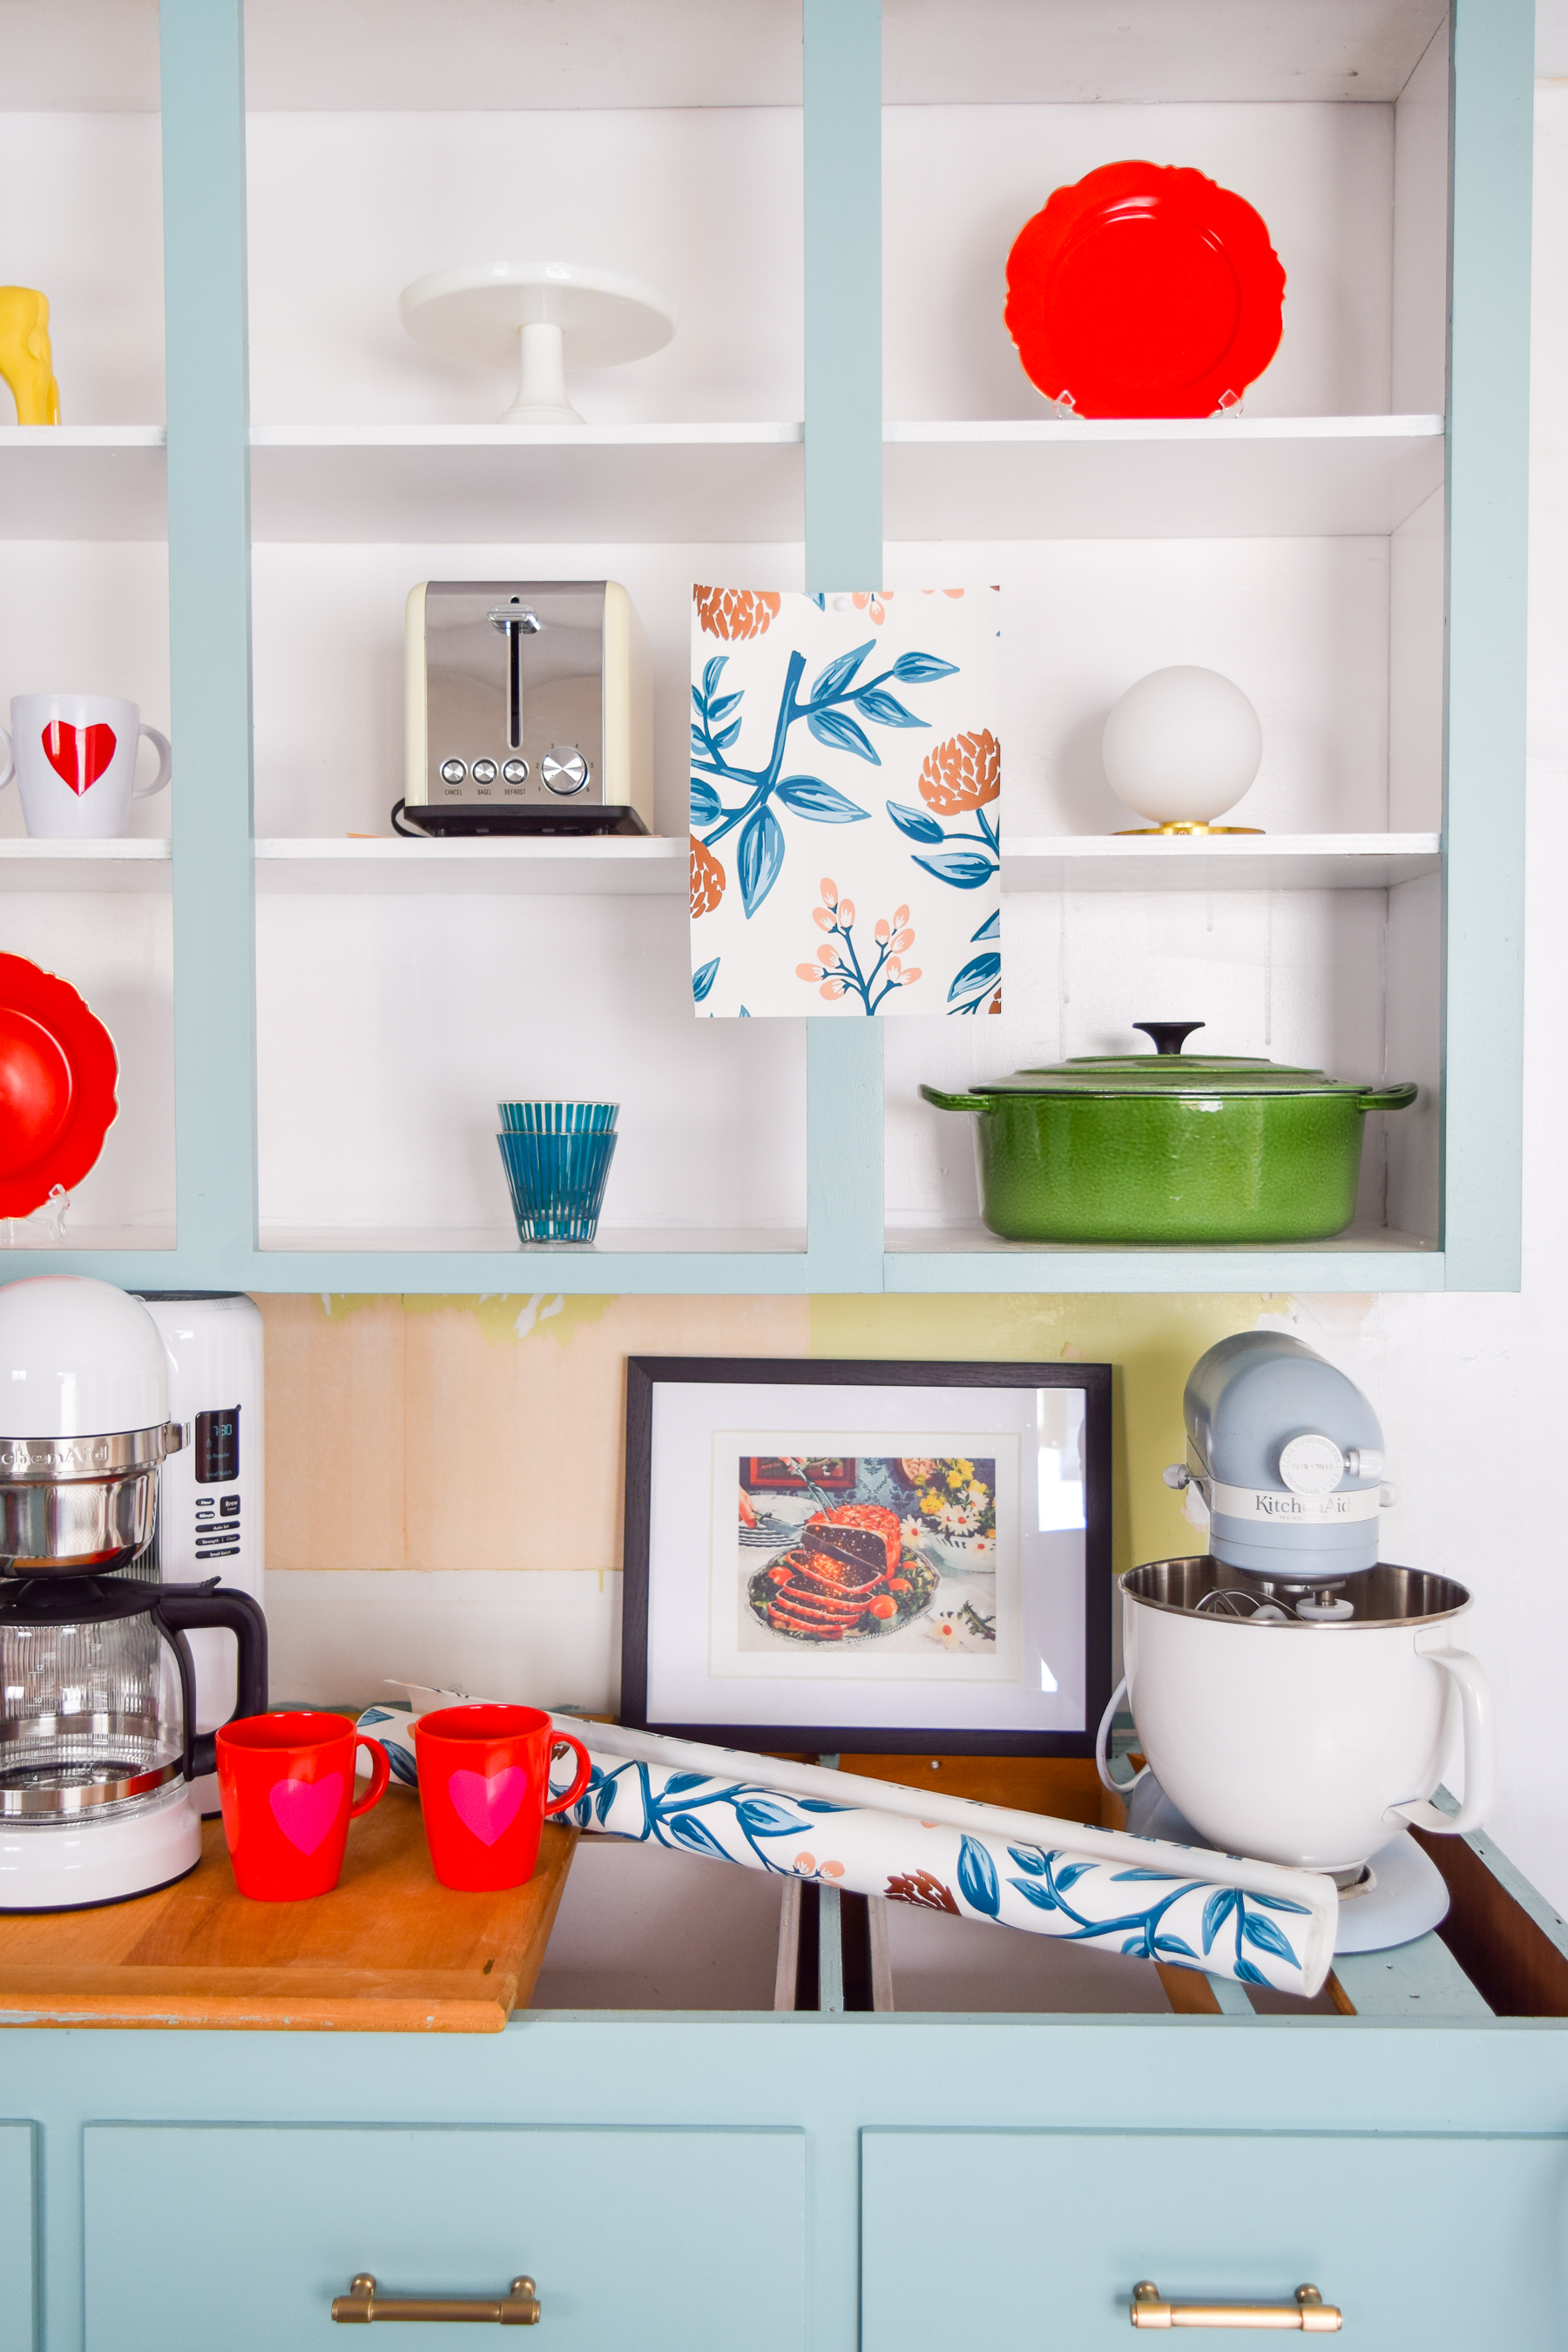 Retro glam kitchen renovation details are all tha counts! Everything from wallpaper, to light fixtures, electrical work, plumbing and more. Come see what's going on behind the scenes during Week 4 of the Spring One Room Challenge.